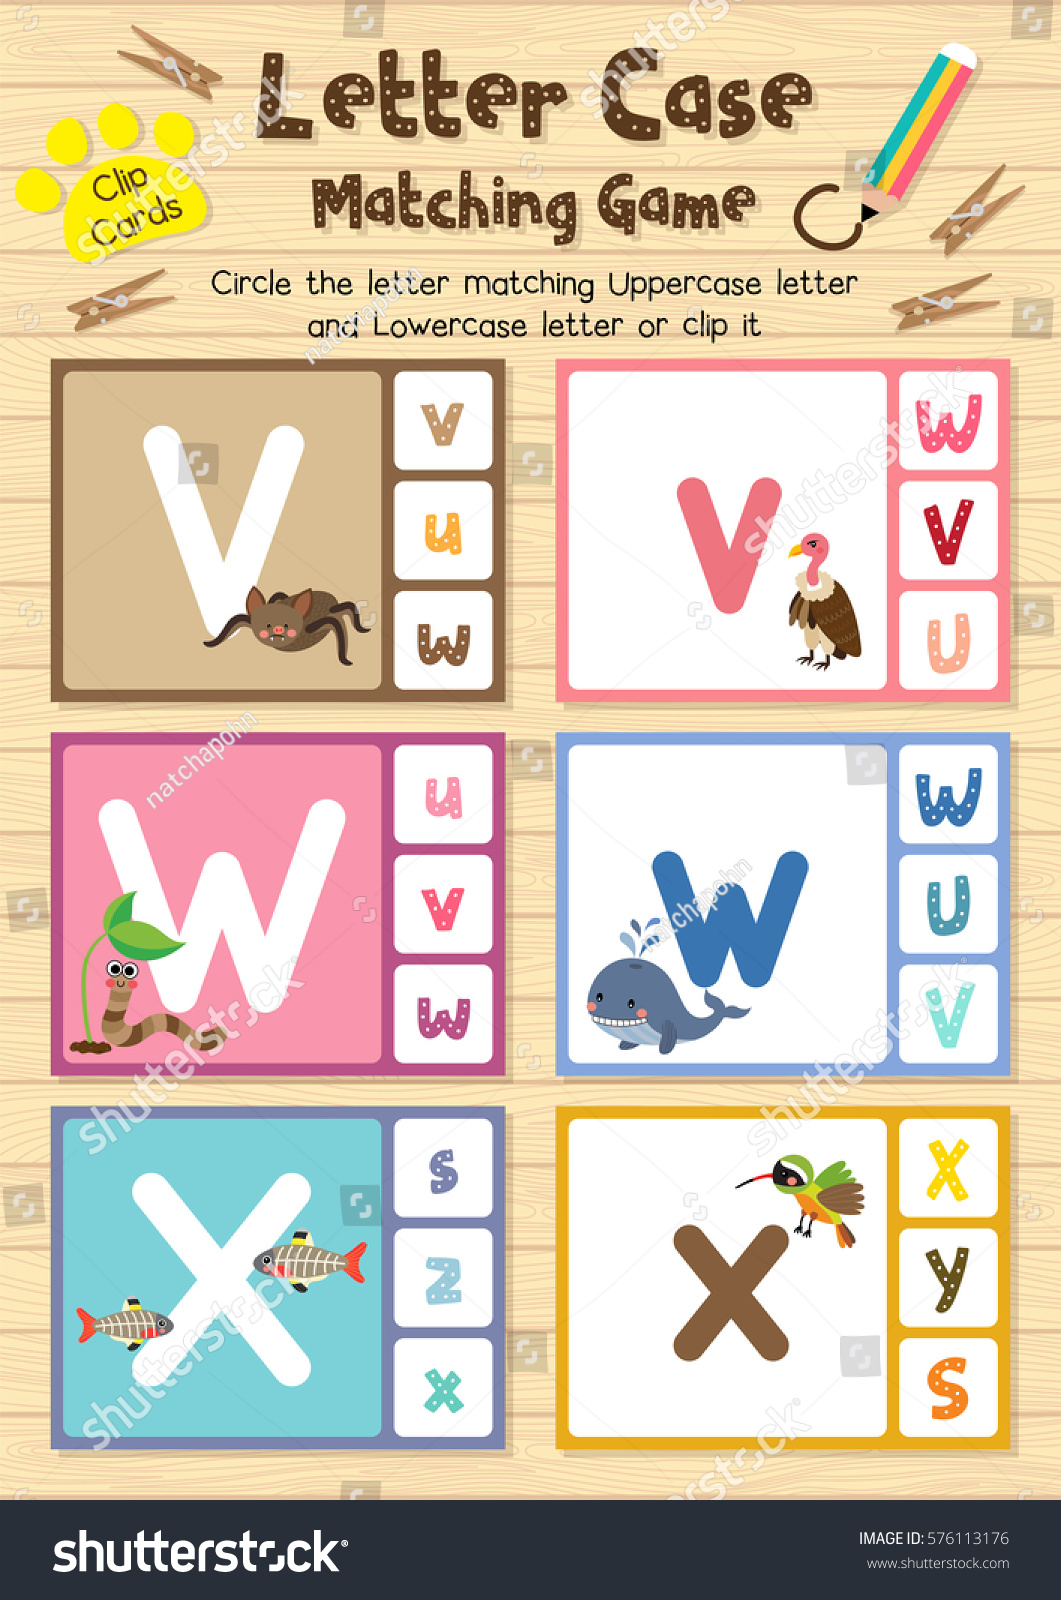 Clip Cards Matching Game Letter Case